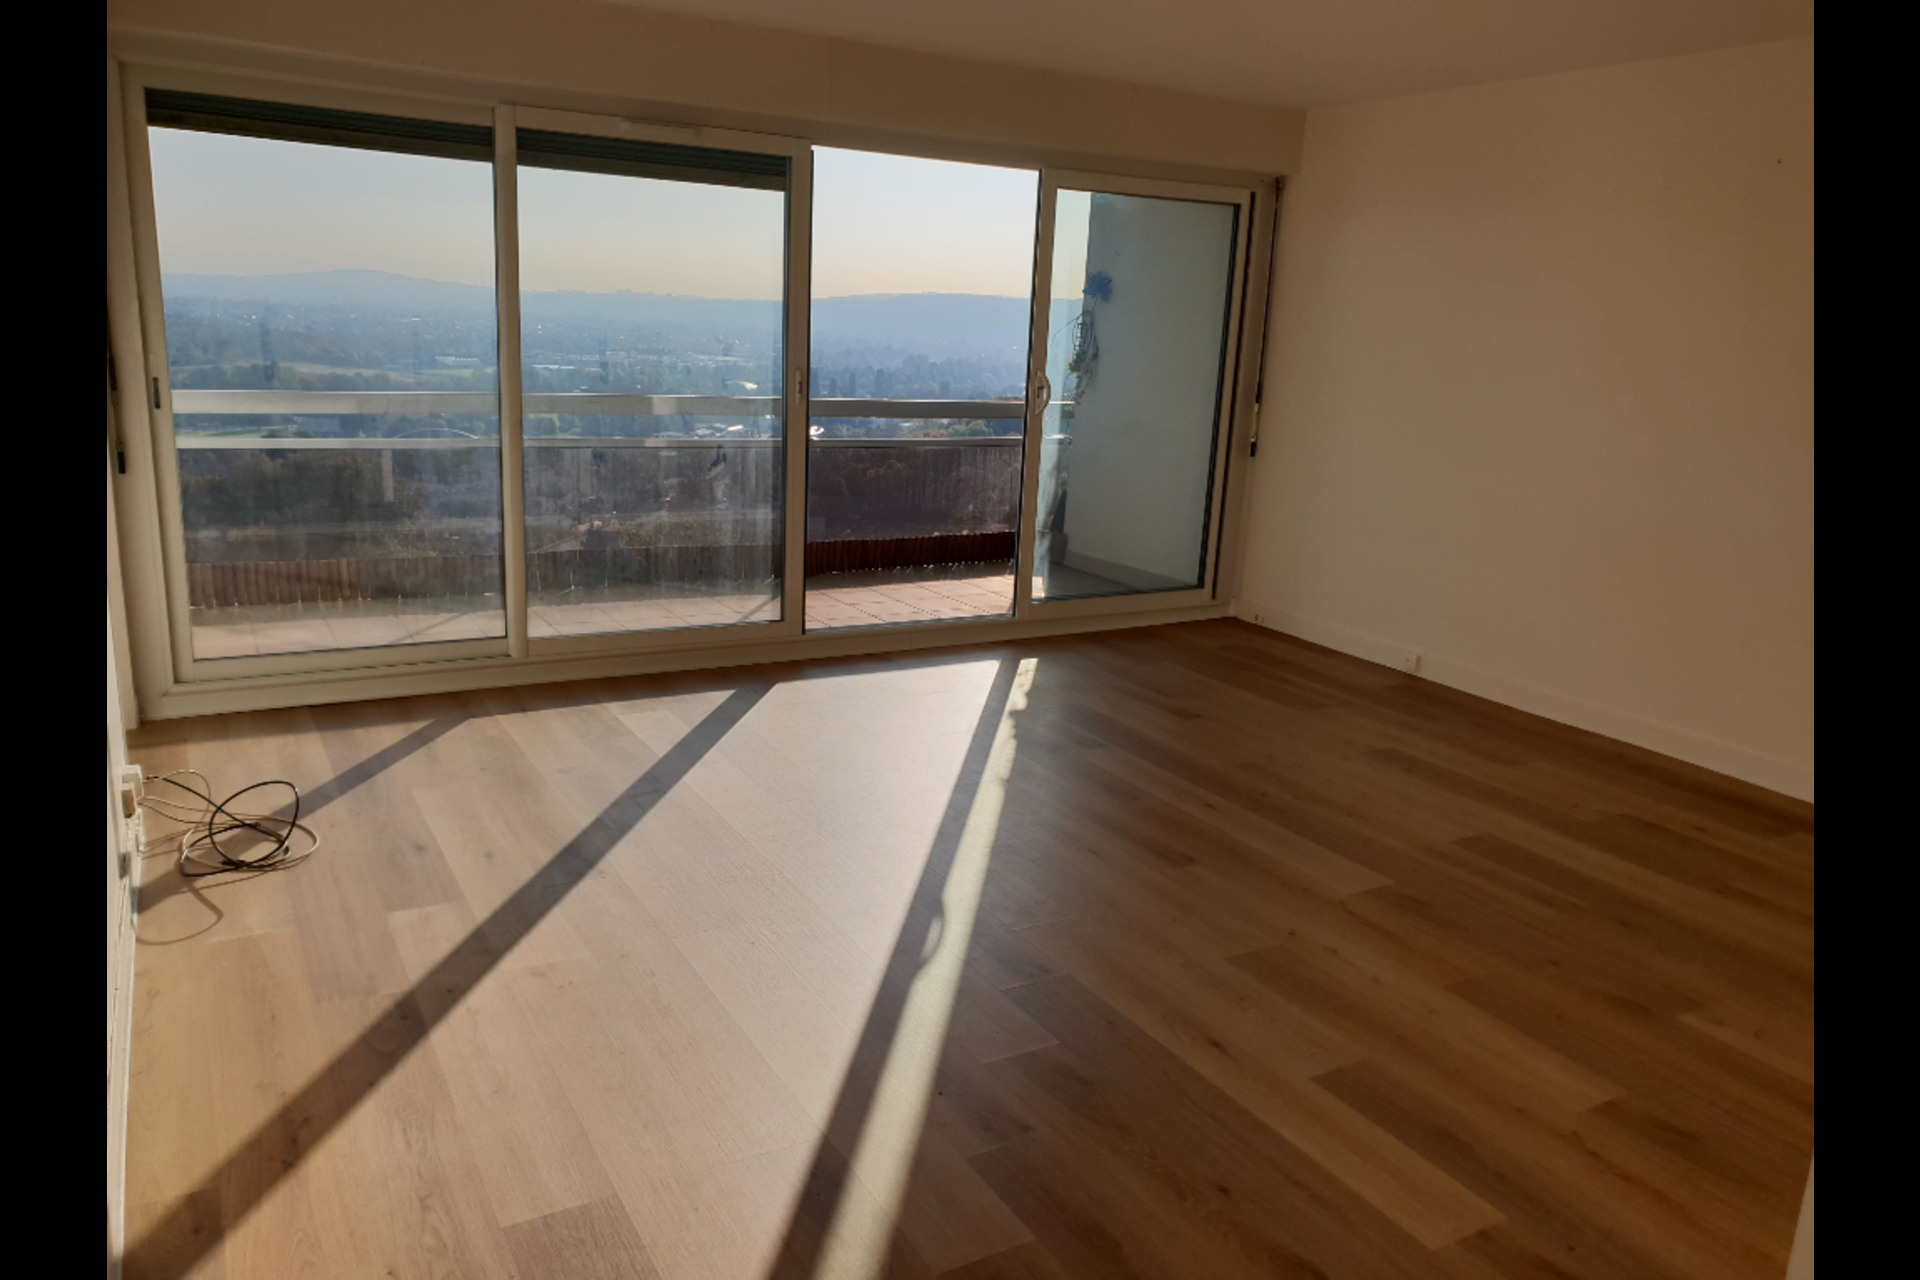 image 2 - Apartment For sale marly le roi - 5 rooms